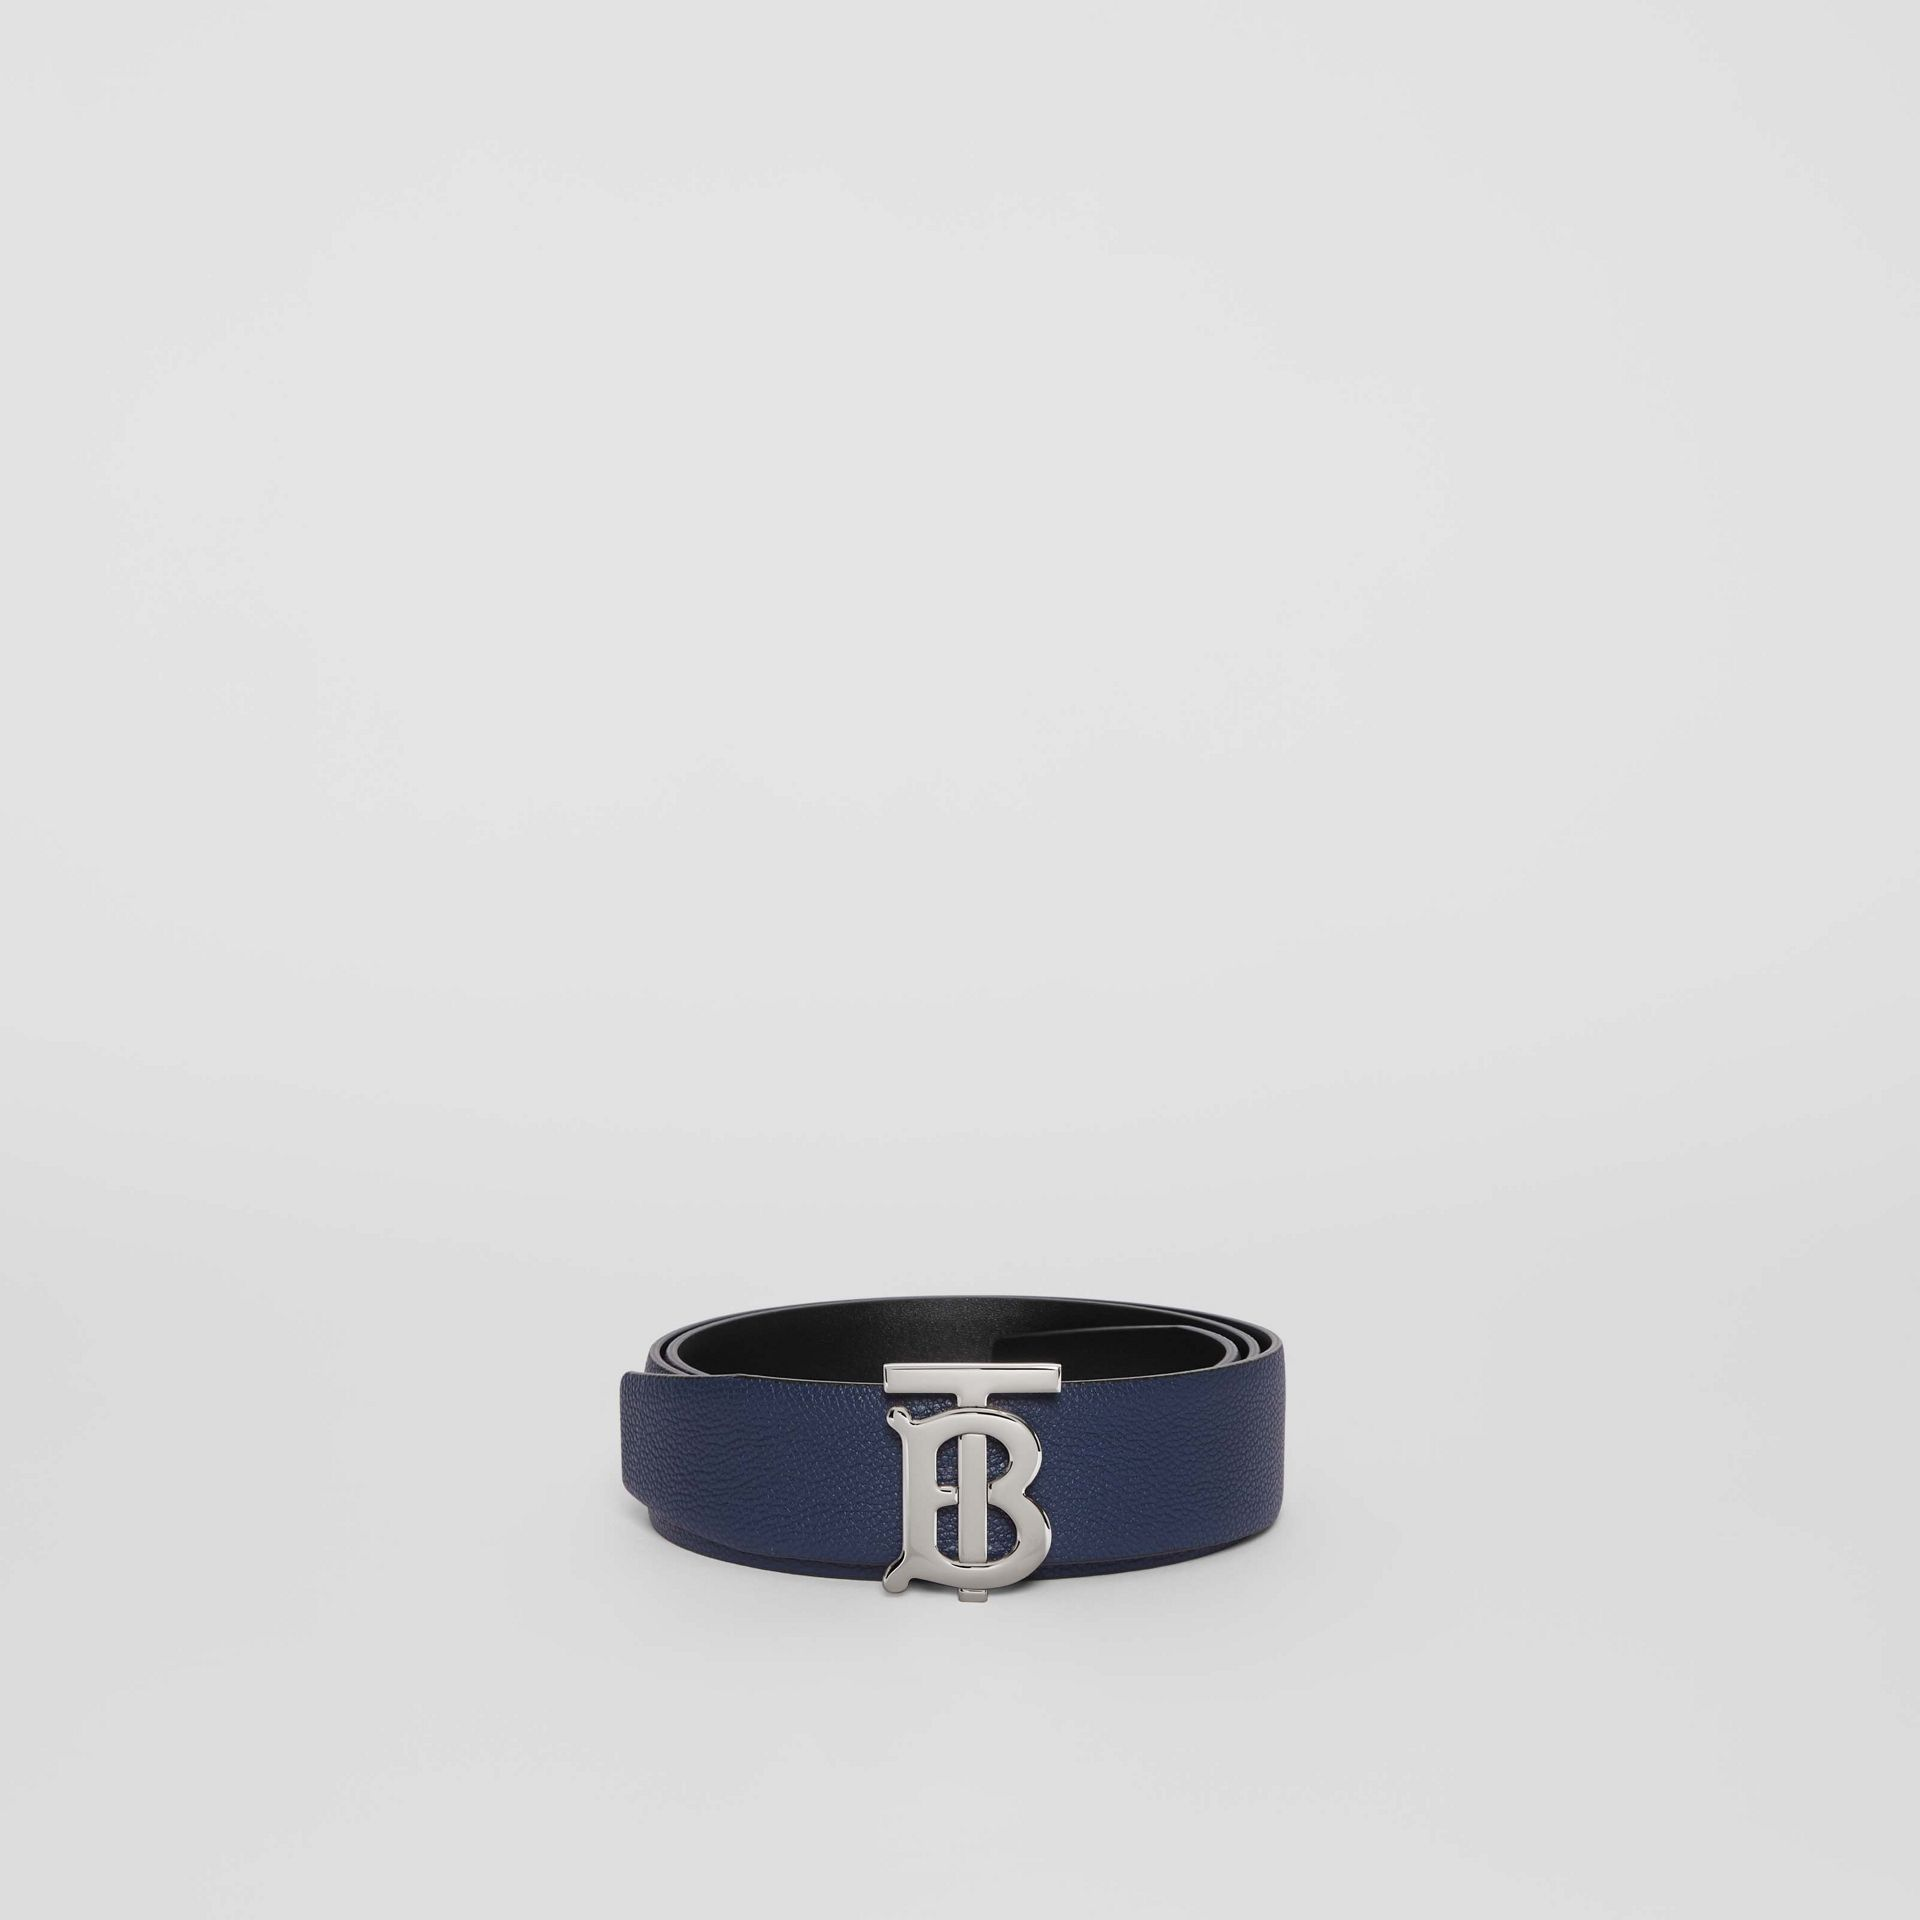 Reversible Monogram Motif Leather Belt in Navy/black - Men | Burberry Hong Kong S.A.R - gallery image 3